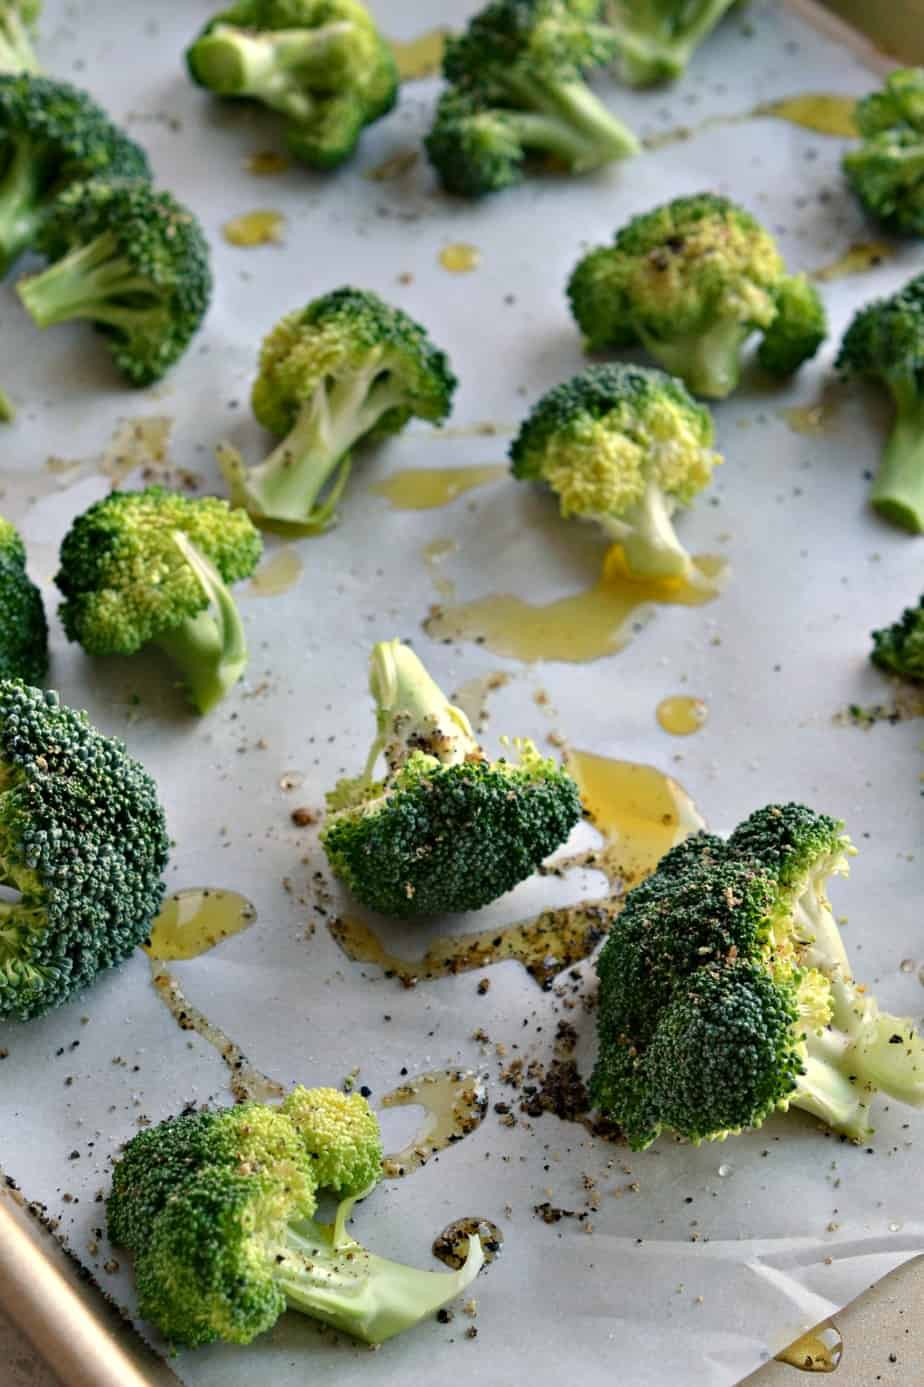 Once you try this delectable way to prepare oven roasted broccoli it will become a regular at your meal table.